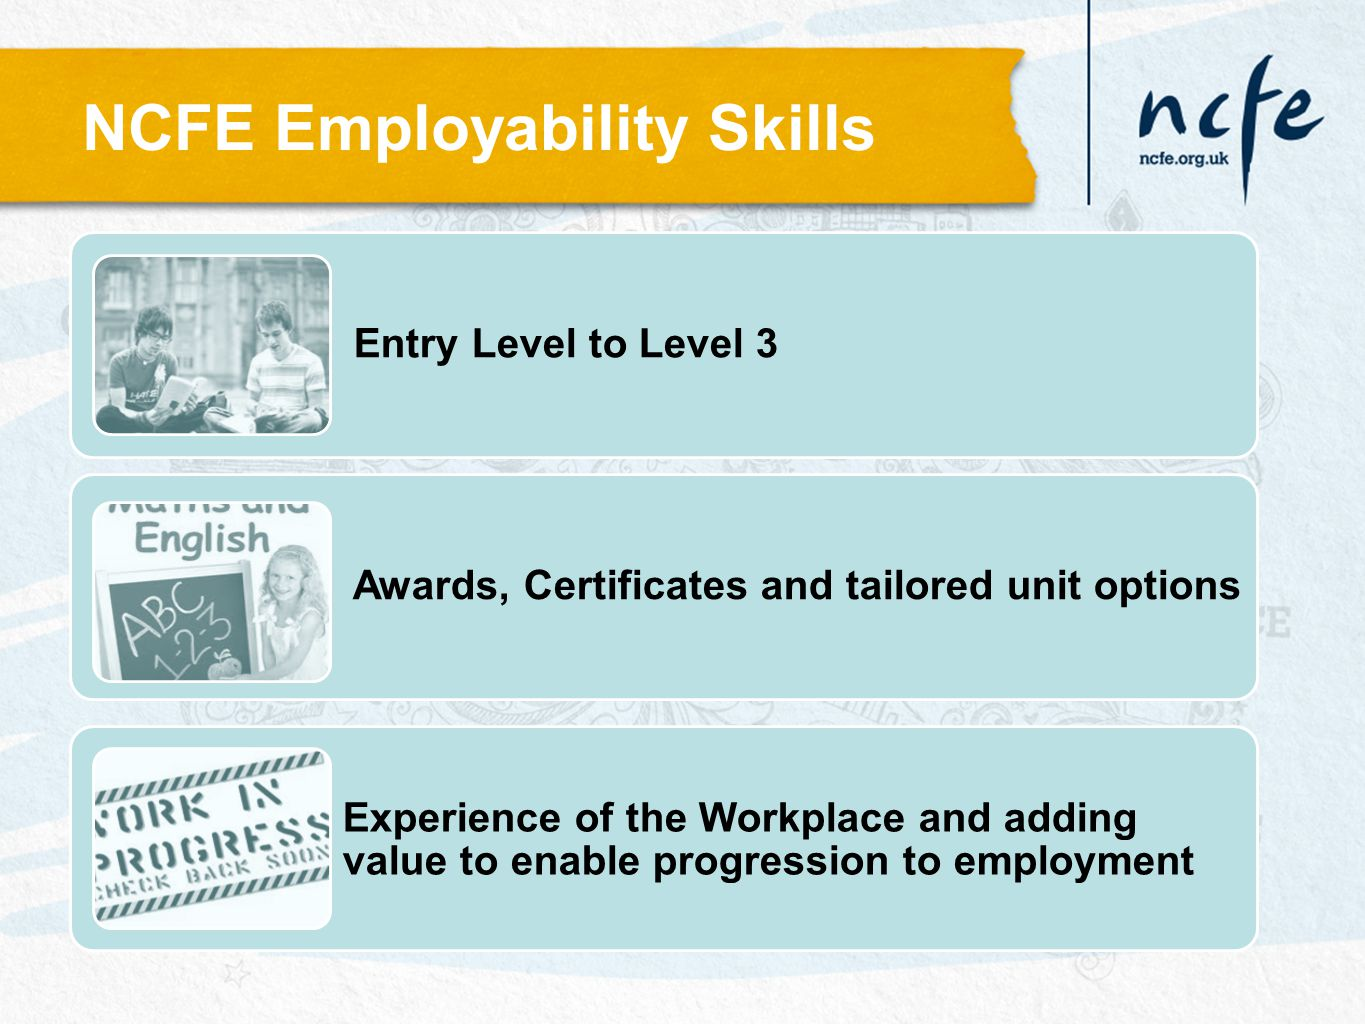 Entry Level to Level 3 Awards, Certificates and tailored unit options Experience of the Workplace and adding value to enable progression to employment